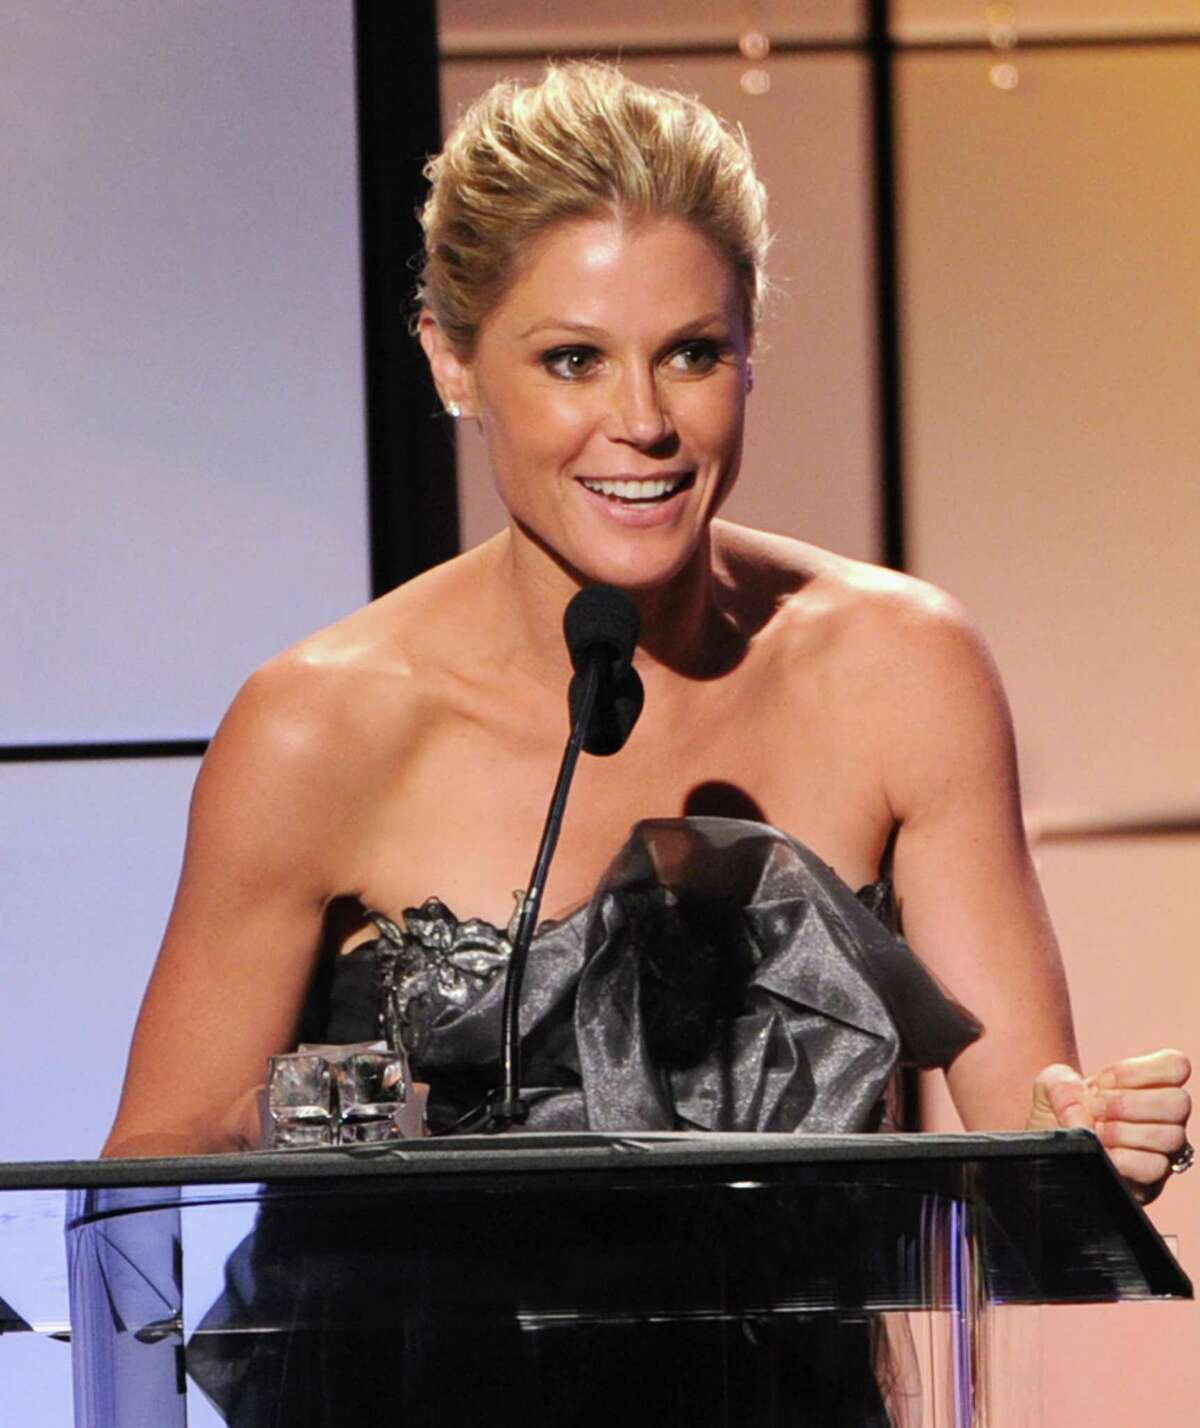 Julie Bowen accepts the award for Best Comedy Actress onstage during The Broadcast Television Journalists Association Second Annual Critics' Choice Awards at The Beverly Hilton Hotel on Monday.